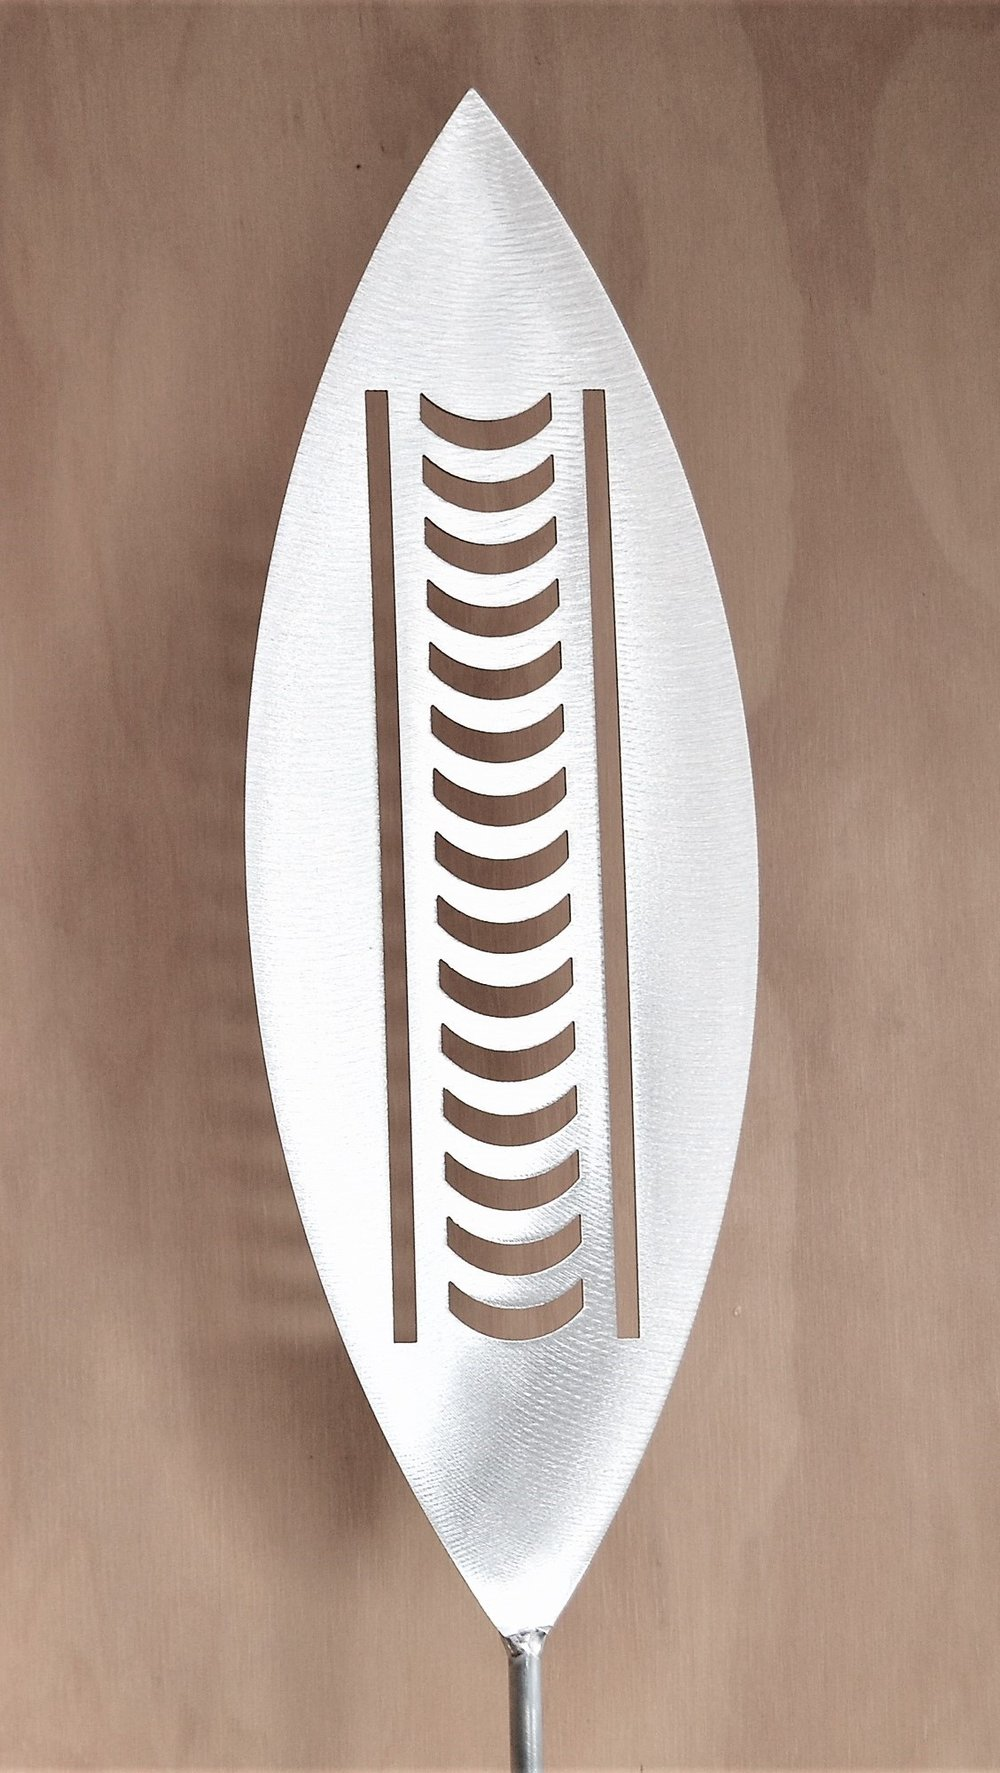 'Rise and Shine' Nikau  Grounded Art NZ, aluminium, 1650mm tall (400mm spear head on a 1250mm rod)  $95.00